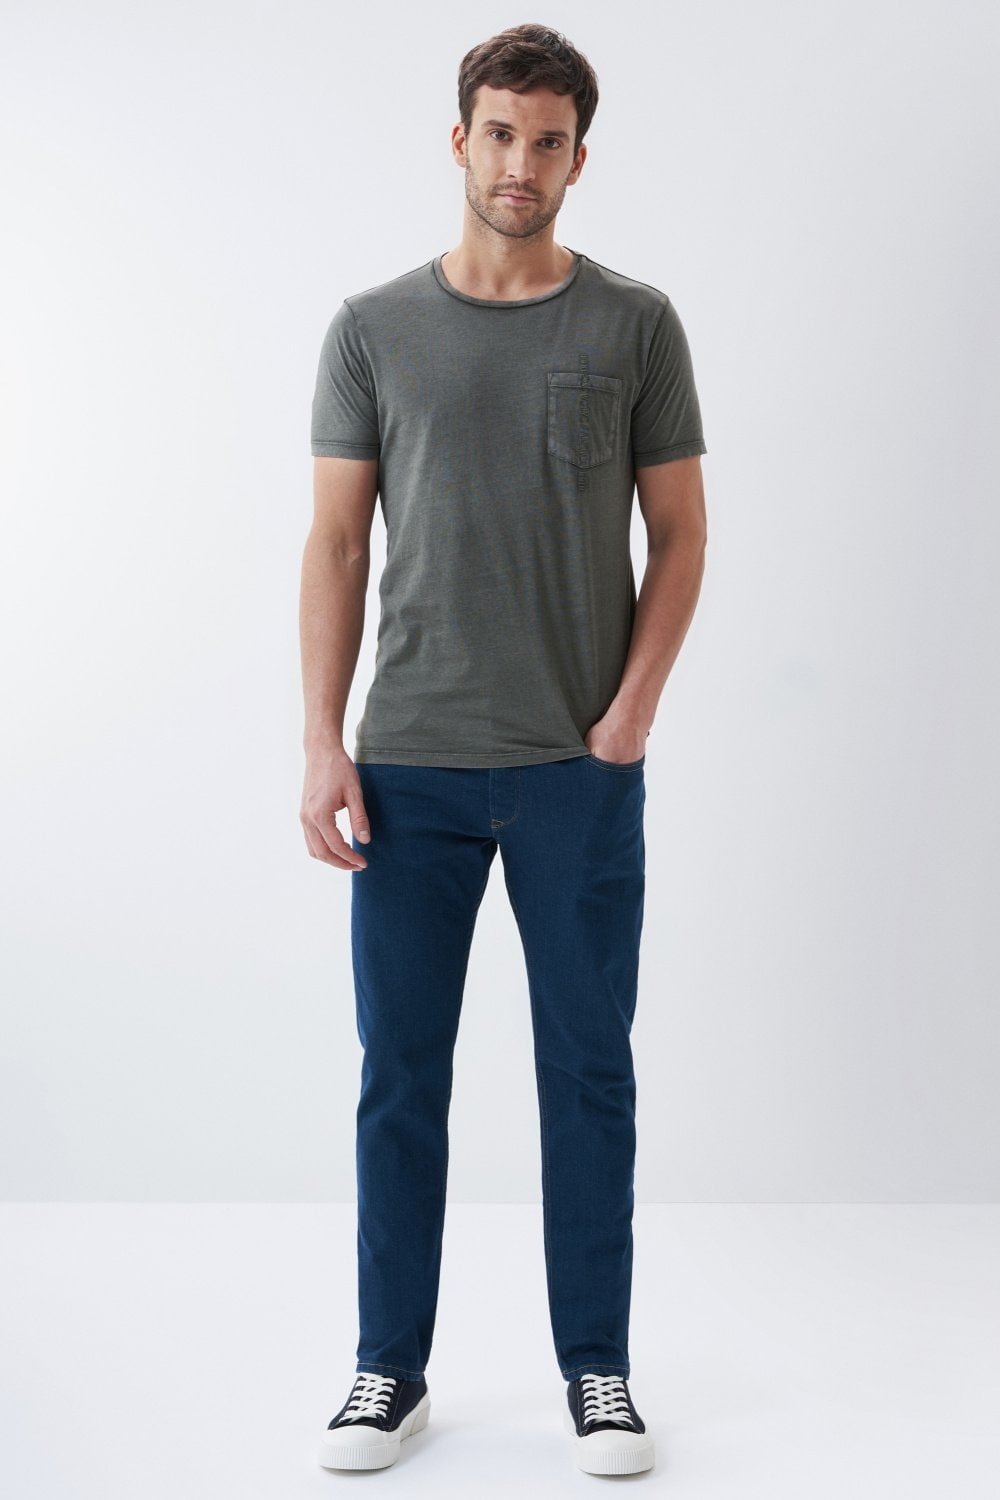 T-shirt with plant dye and pocket - Salsa